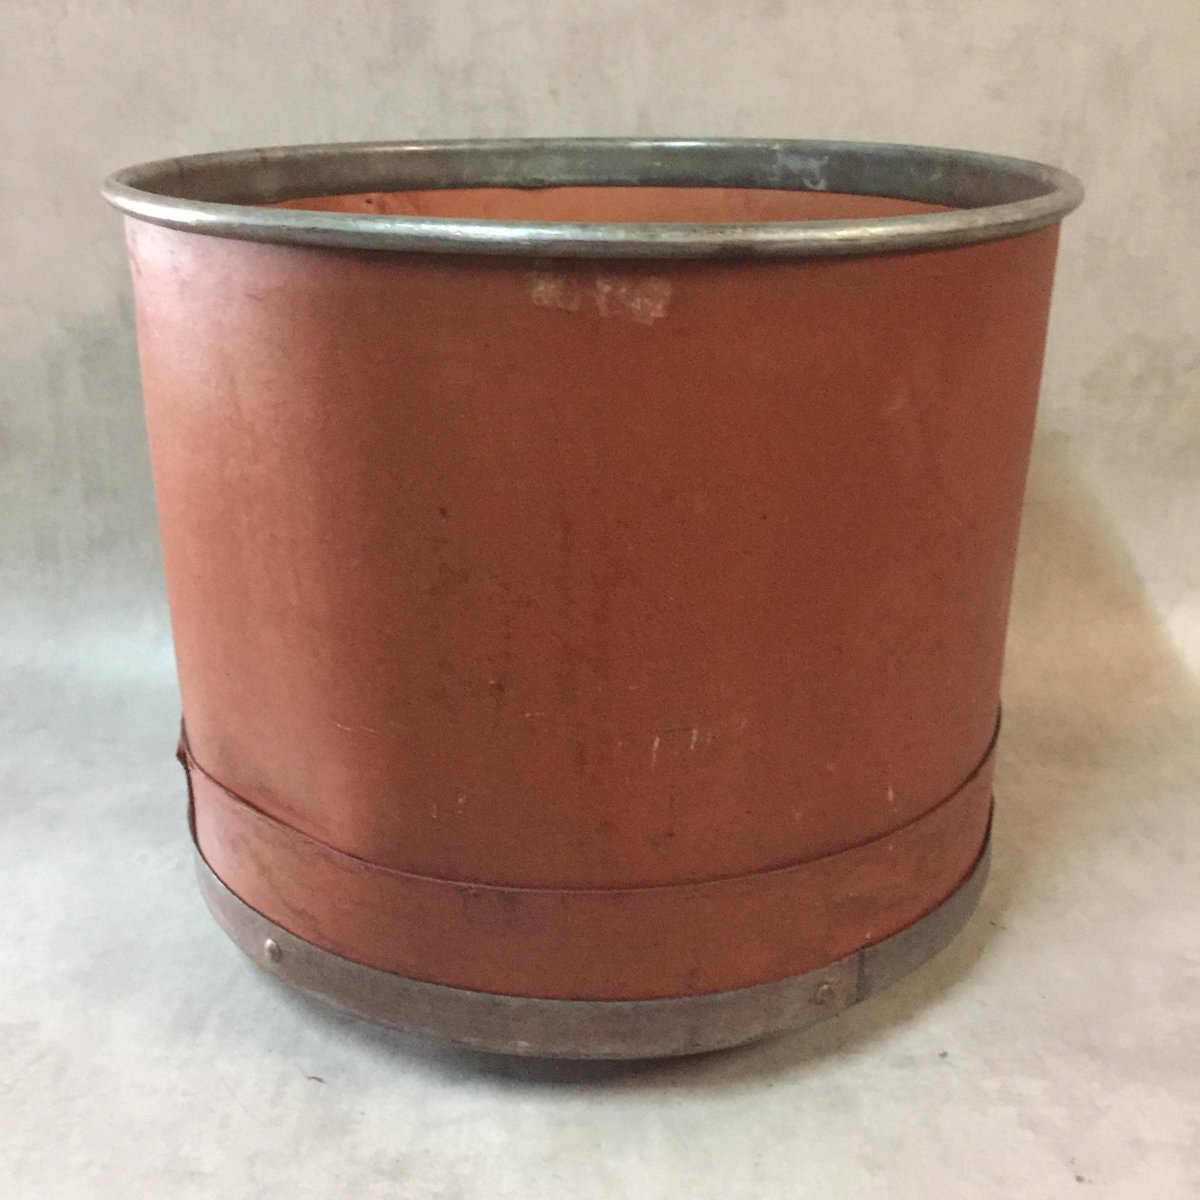 Flower Pots For Sale Vintage French Flower Or Plant Pot From Suroy For Sale At